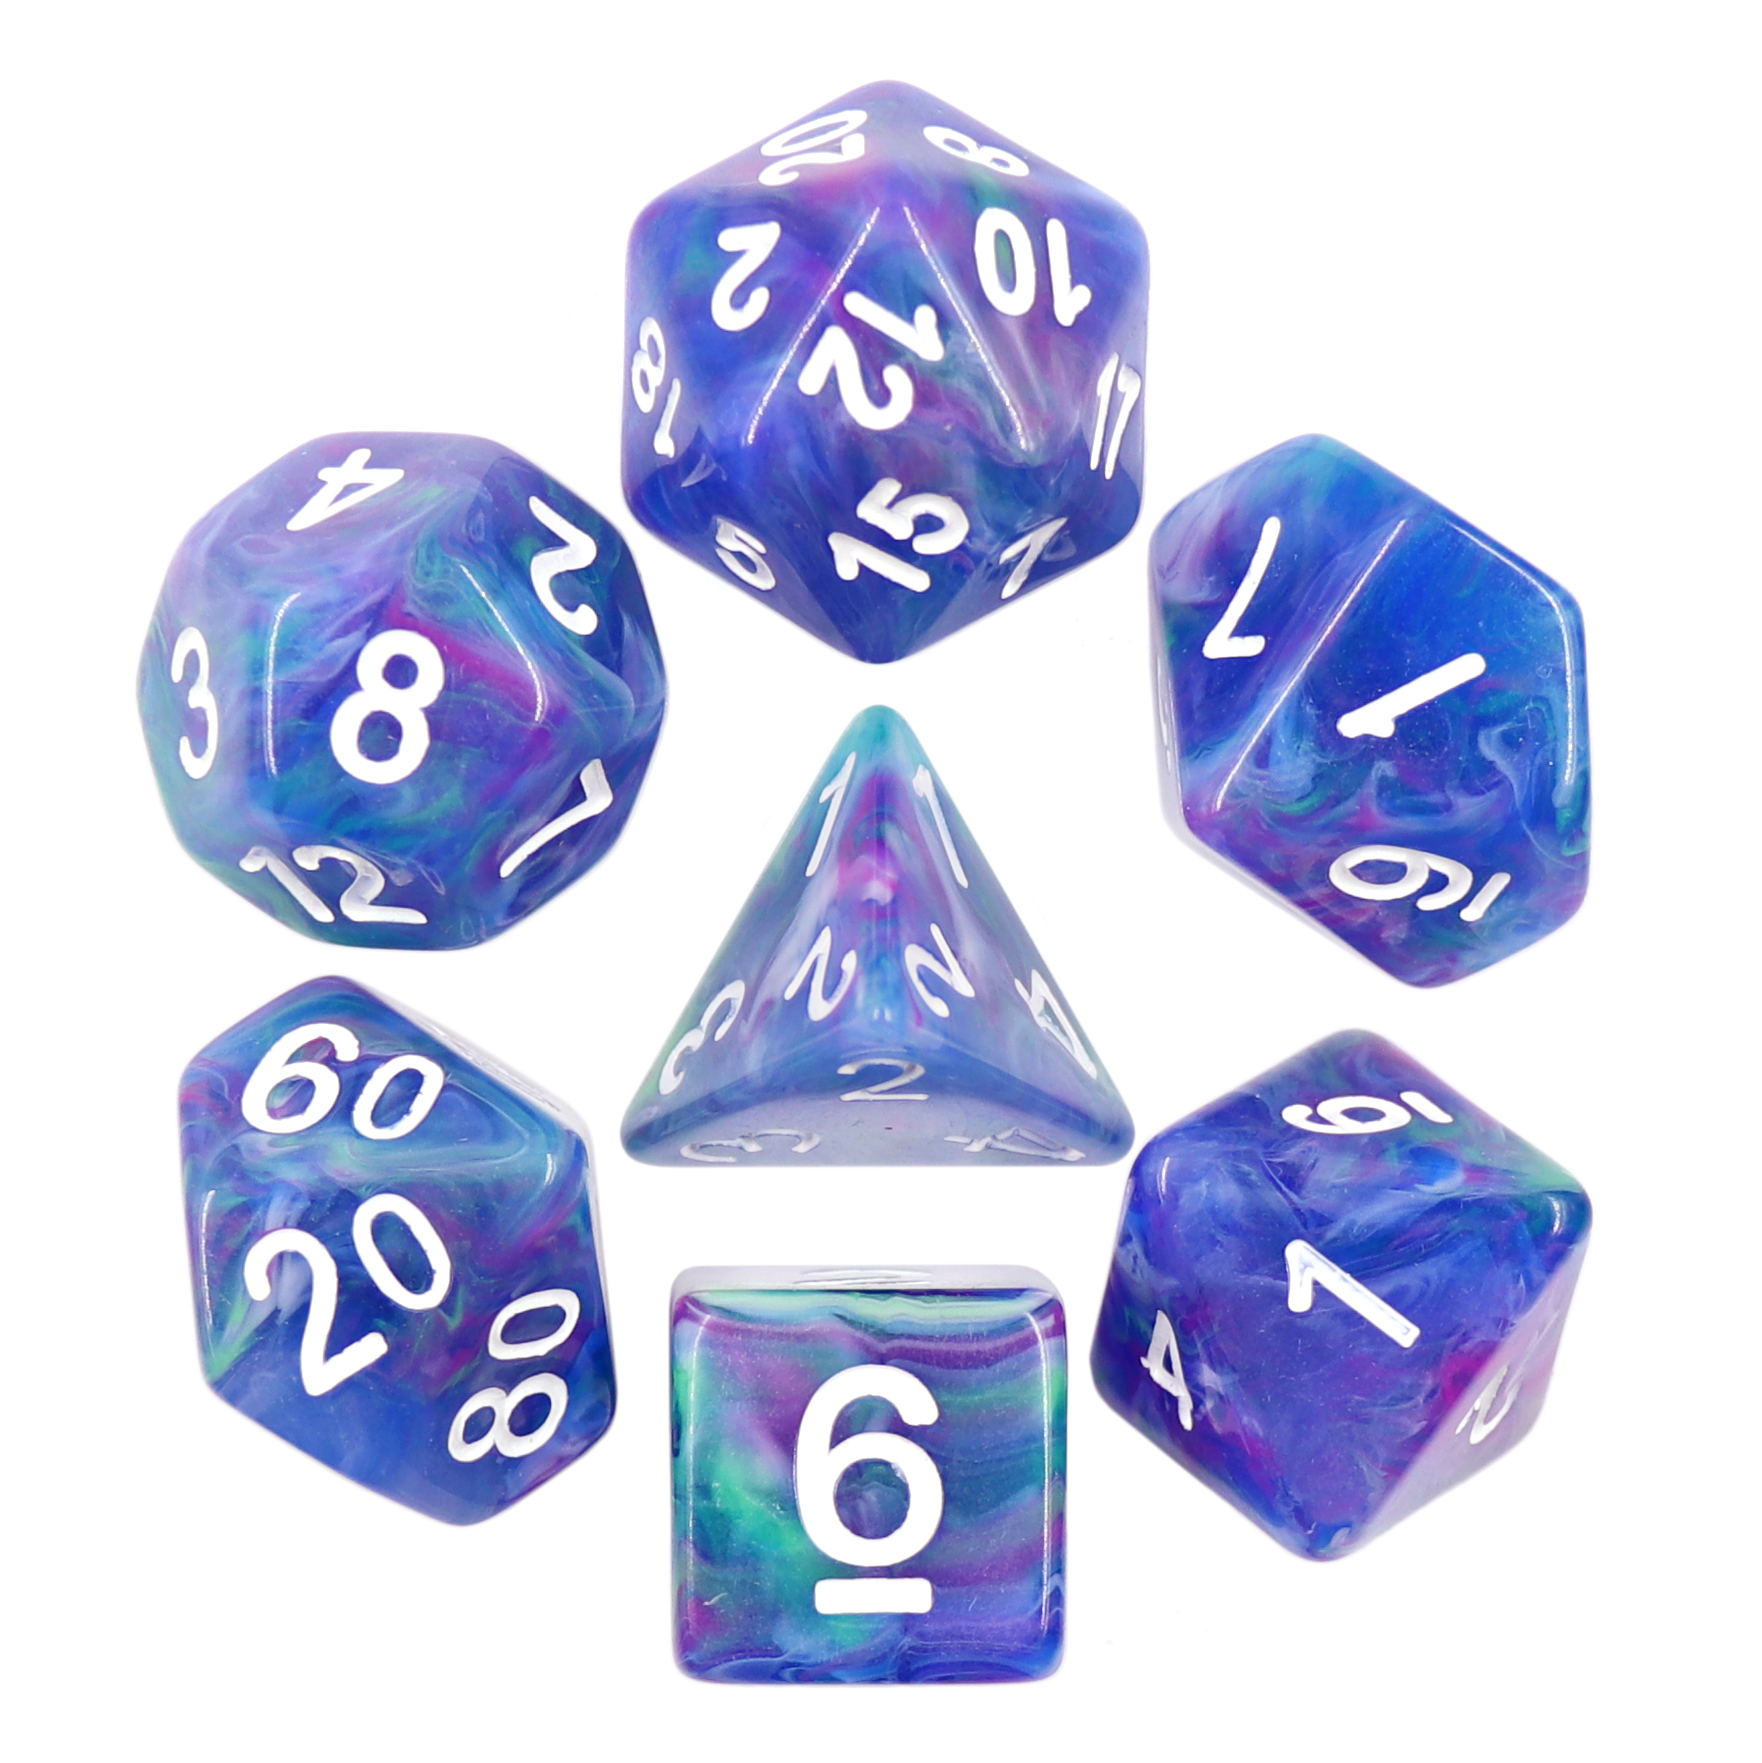 His Dark Materials transformed to Muse Northern Lights dice